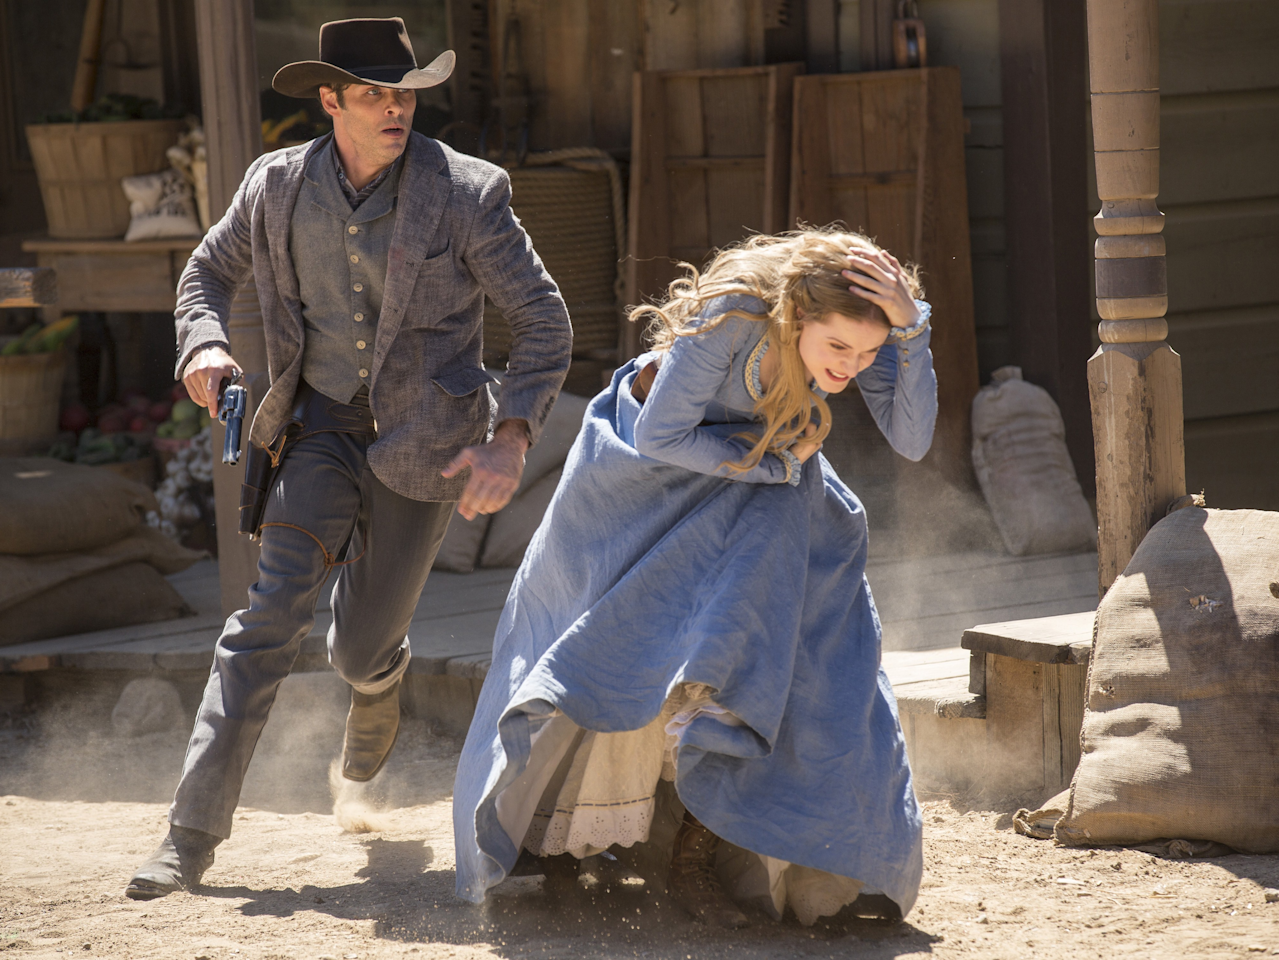 """<p>Cost Per Episode: $8 million +<br />""""Westworld's"""" pilot alone cost around $25 million to make so it's no surprise the western/sci-fi/drama will keep with its high ticket TV-making, but to the tune of $8-$10 million per episode for season two. This season will introduce new worlds and theme parks and one of the anticipated realms is <a rel=""""nofollow"""" href=""""https://www.theguardian.com/tv-and-radio/tvandradioblog/2017/oct/05/westworld-season-two-roman-samurai"""">speculated</a> to be that of the Samuraiworld. </p>"""